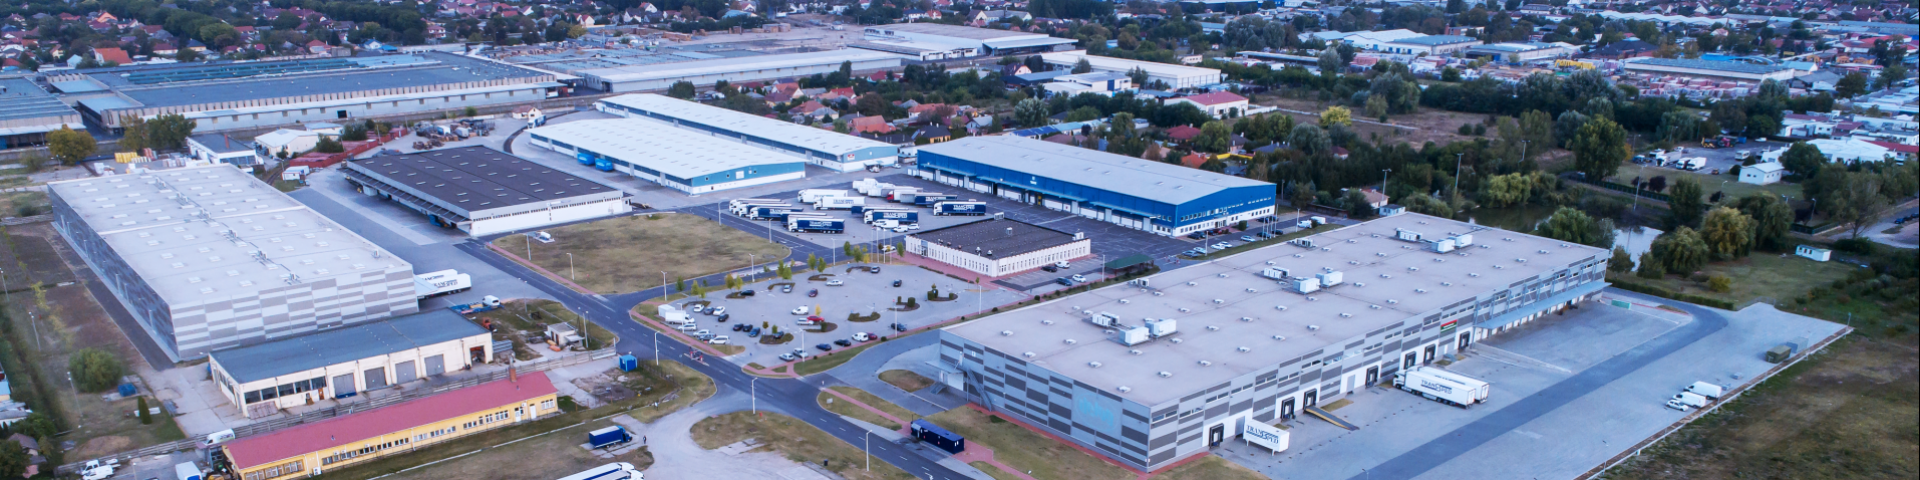 INDUSTRIAL PARK, WAREHOUSE BUILDING, OPERATION